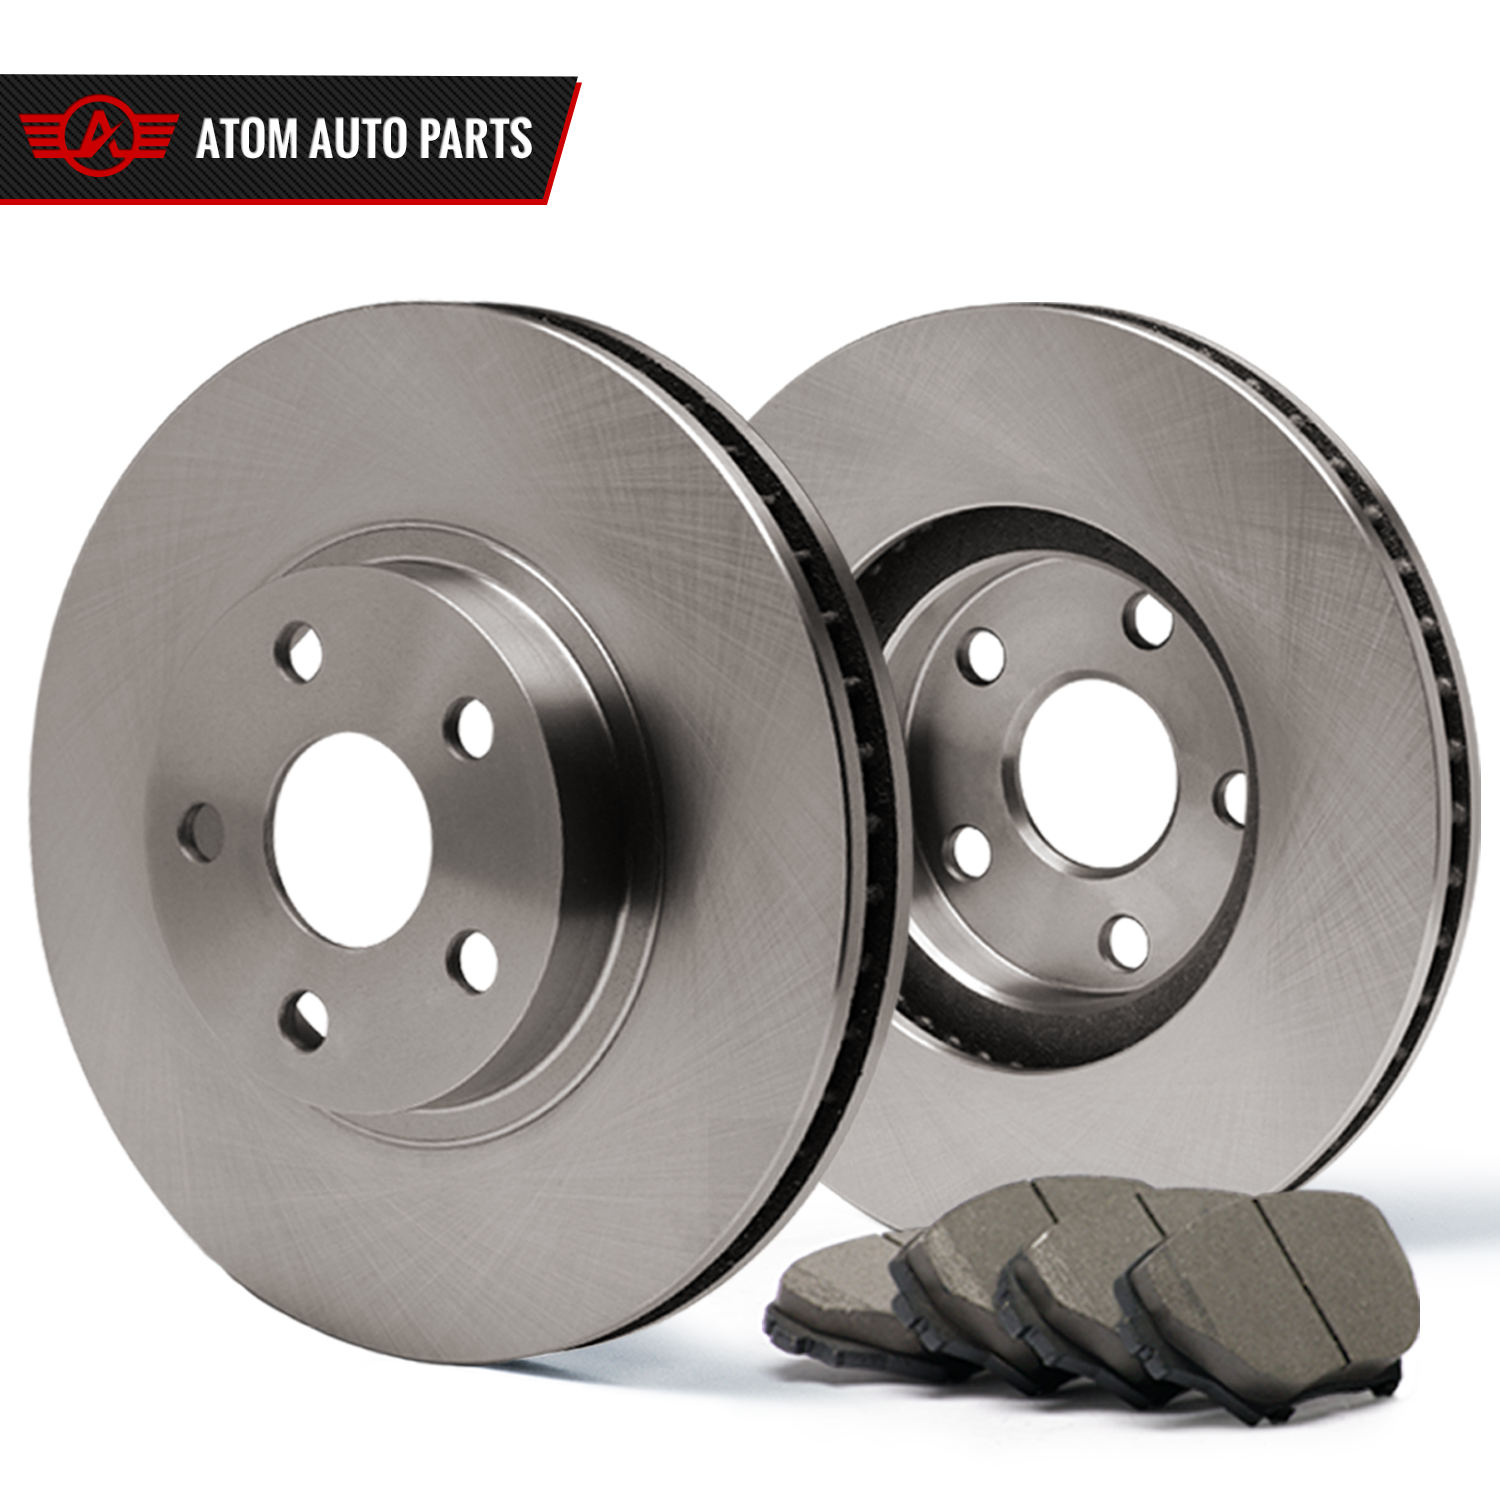 Rear-Rotors-w-Ceramic-Pads-OE-Brakes-2003-2004-2005-E320-E500-2006-E350